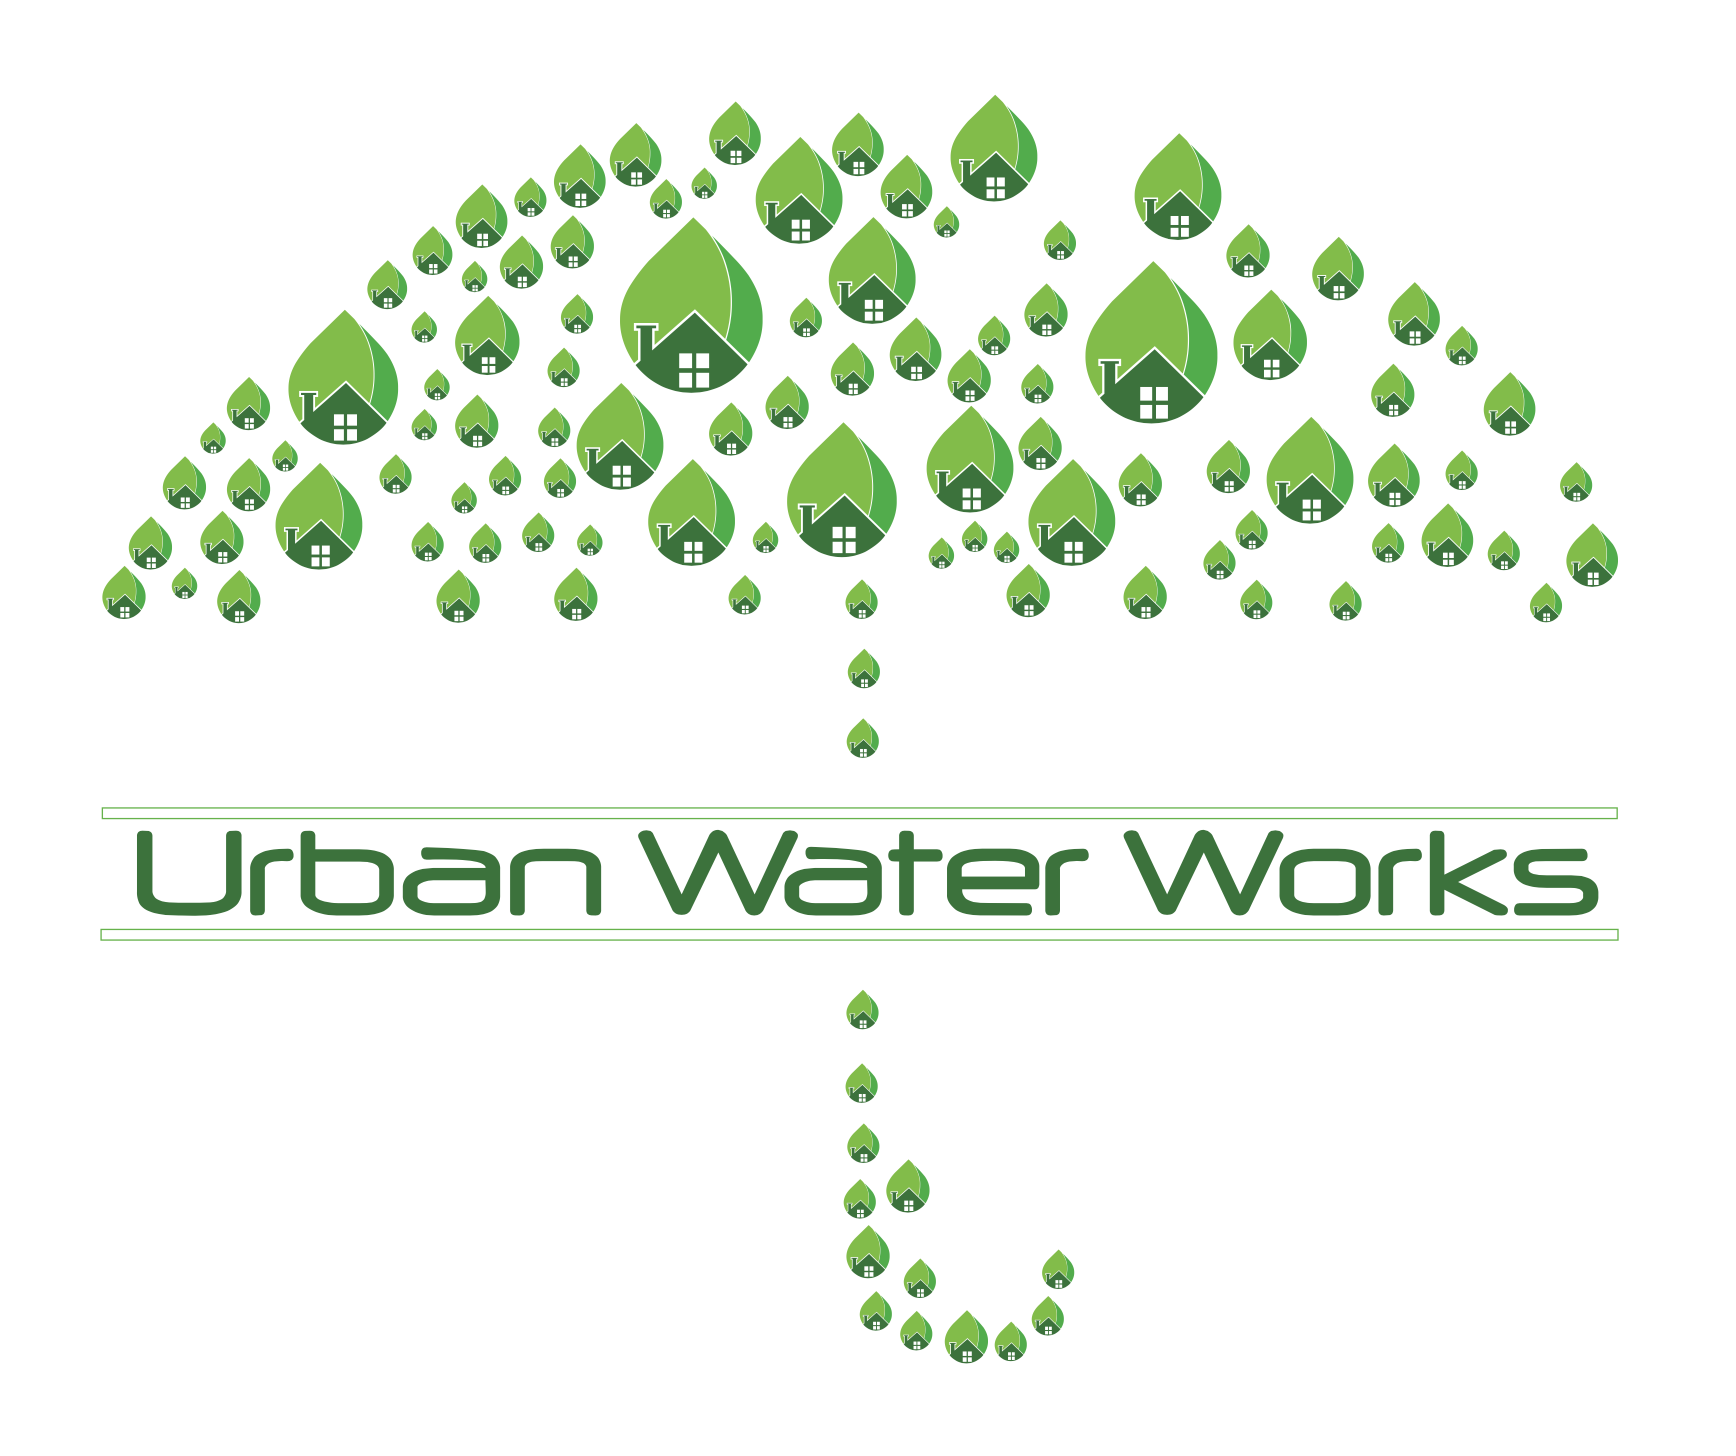 Urban Water Works